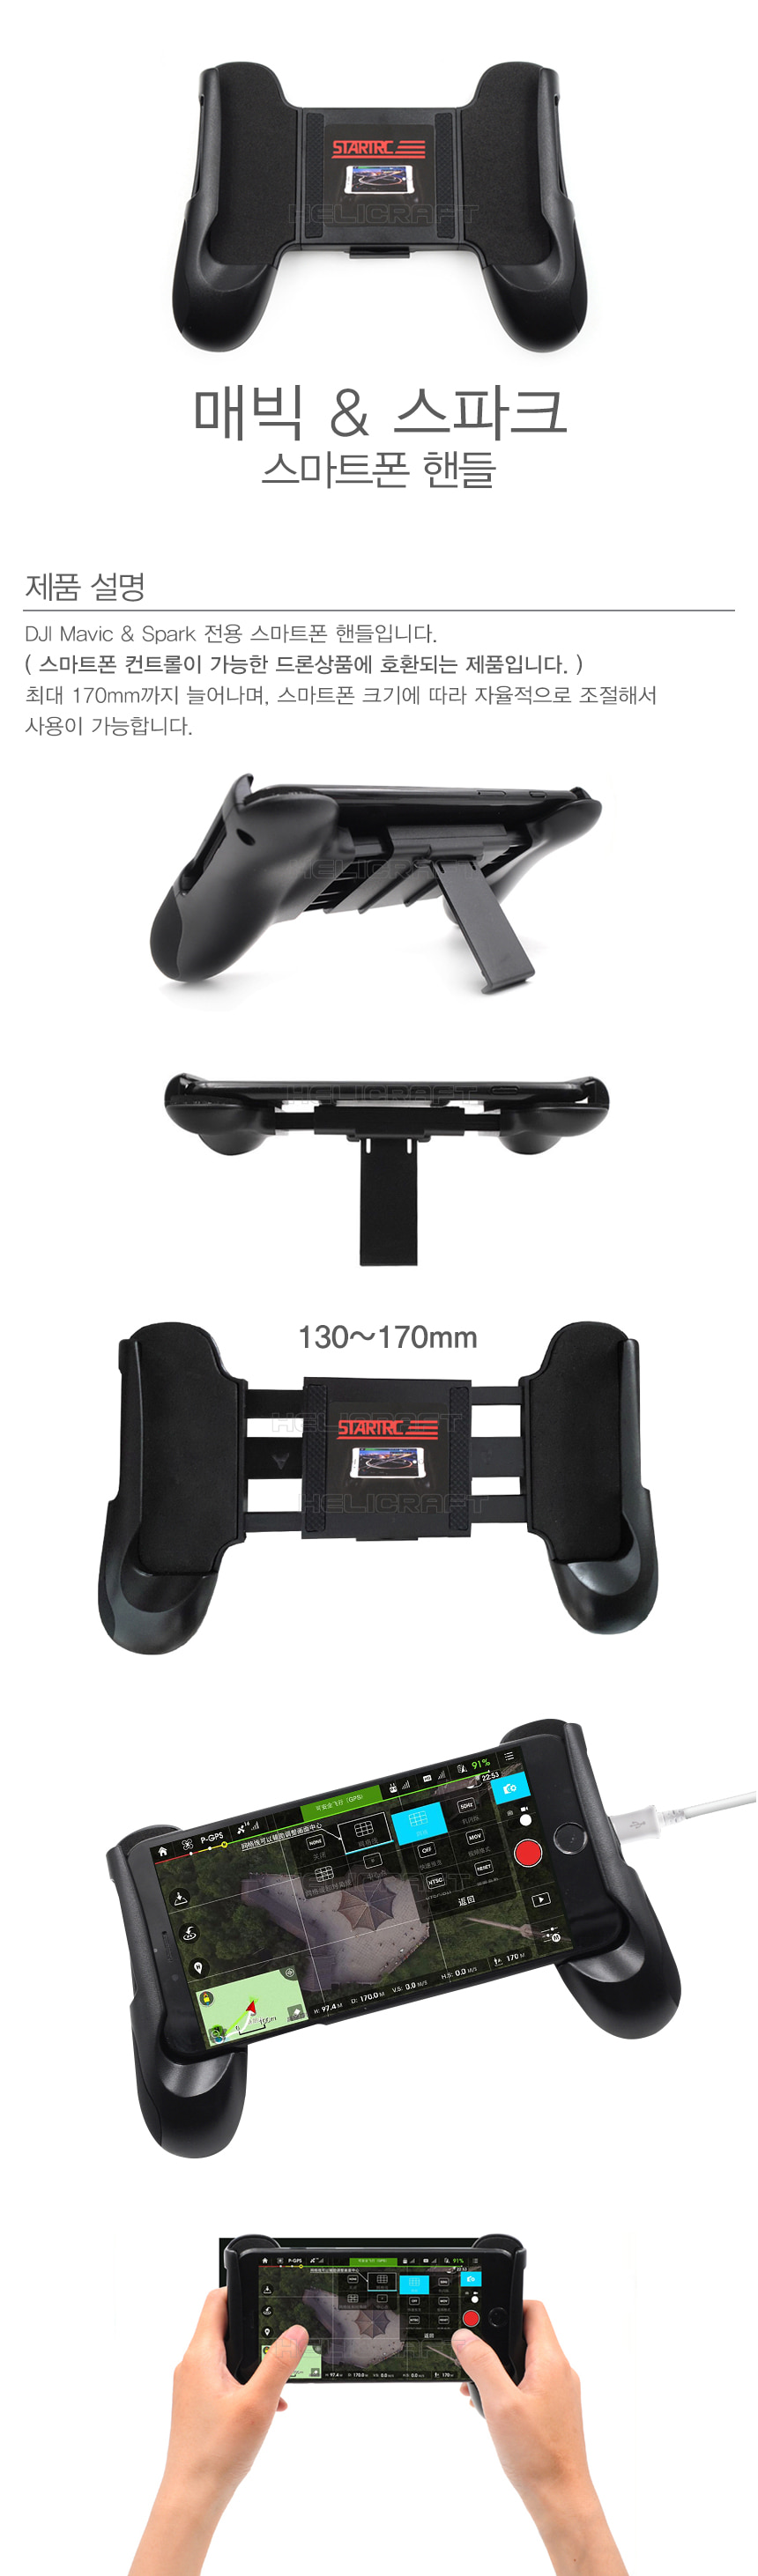 WIFI Drone Transmtter Controller Handle Phone Holder For DJI Mavic Pro Spark